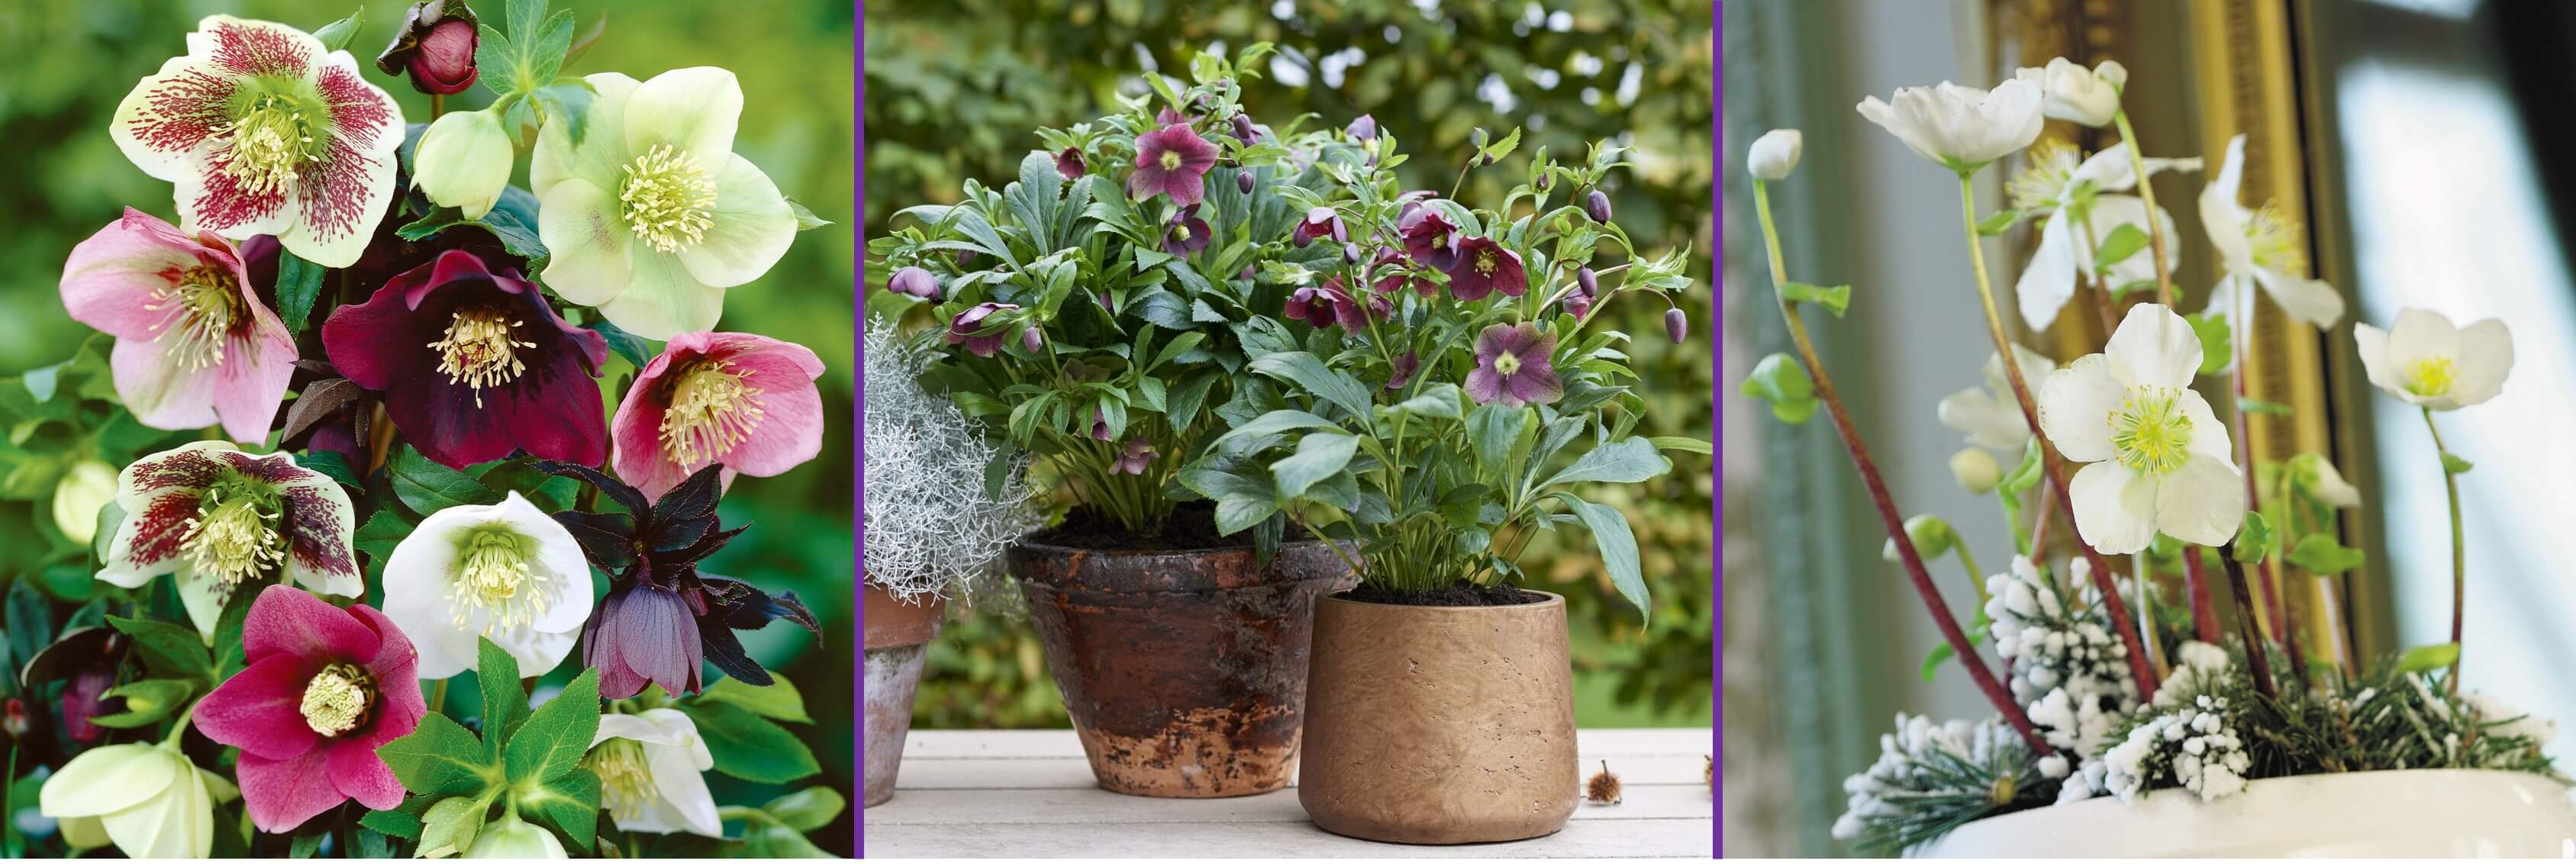 Garden Plant of the Month December: Helleborus